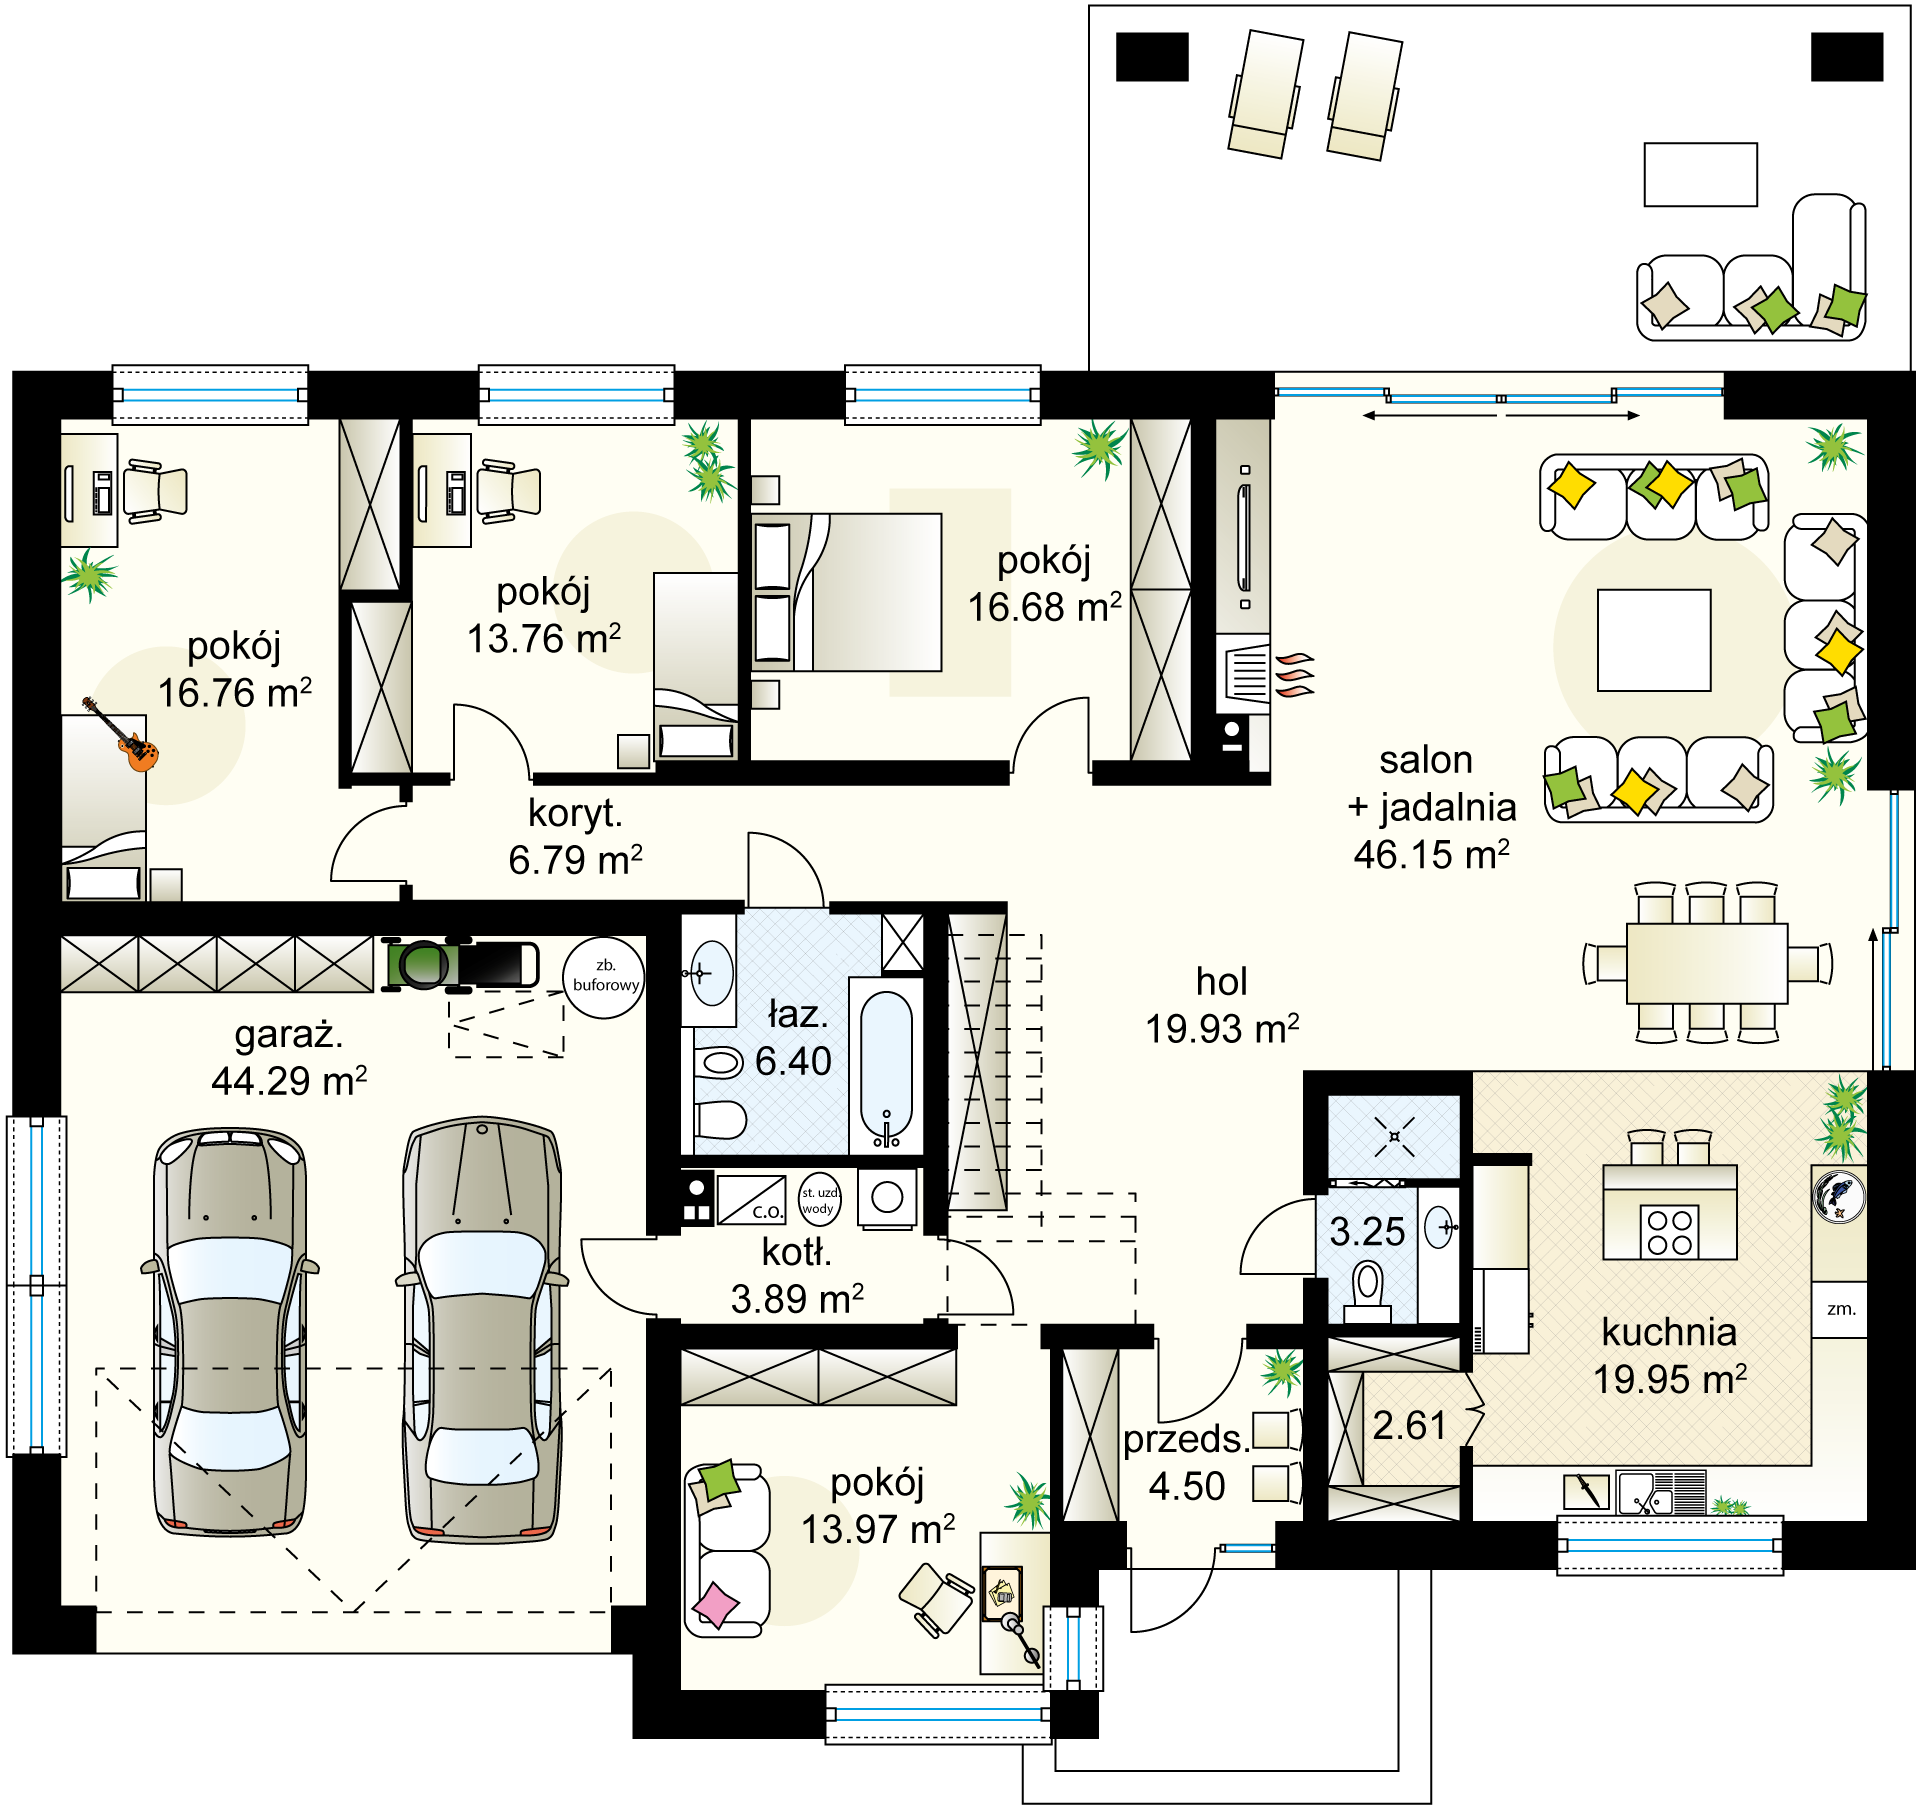 Adria floor plan built by h in cerdanyola spain with date images by adri goula the ictaicp - Vloerplan studio m ...